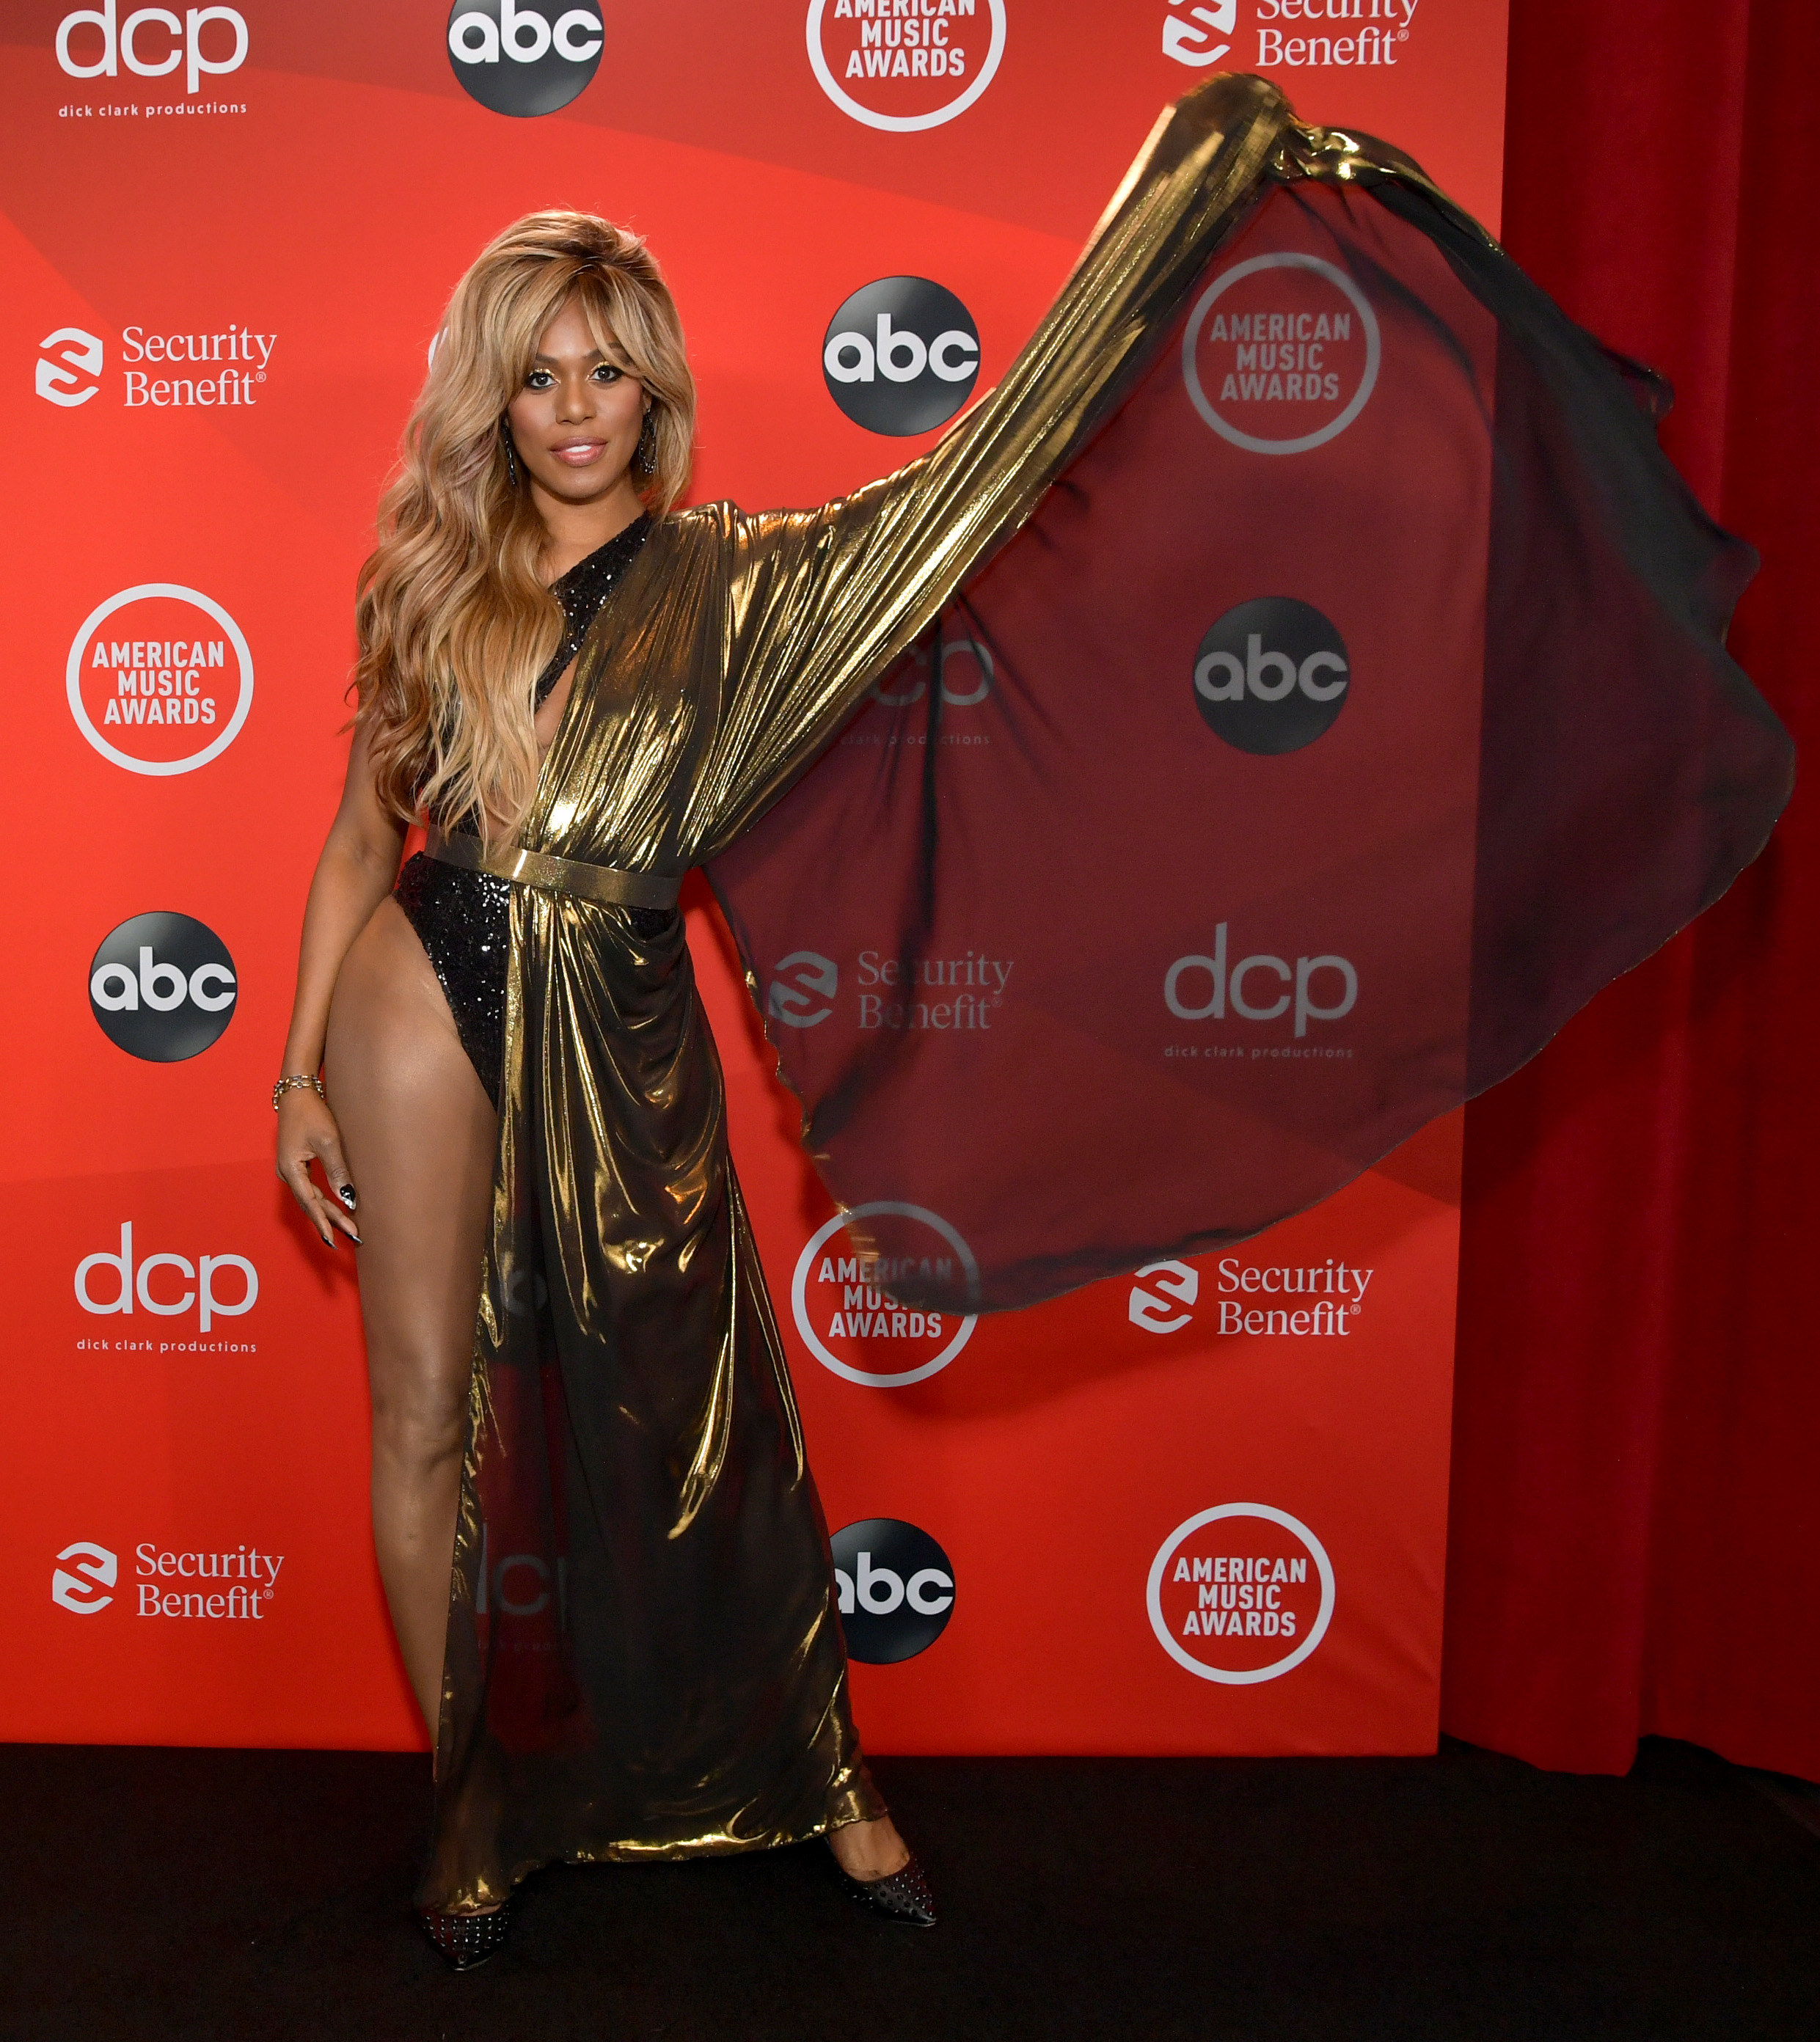 Laverne Cox attends the 2020 American Music Awards in a metallic bodysuit and gown